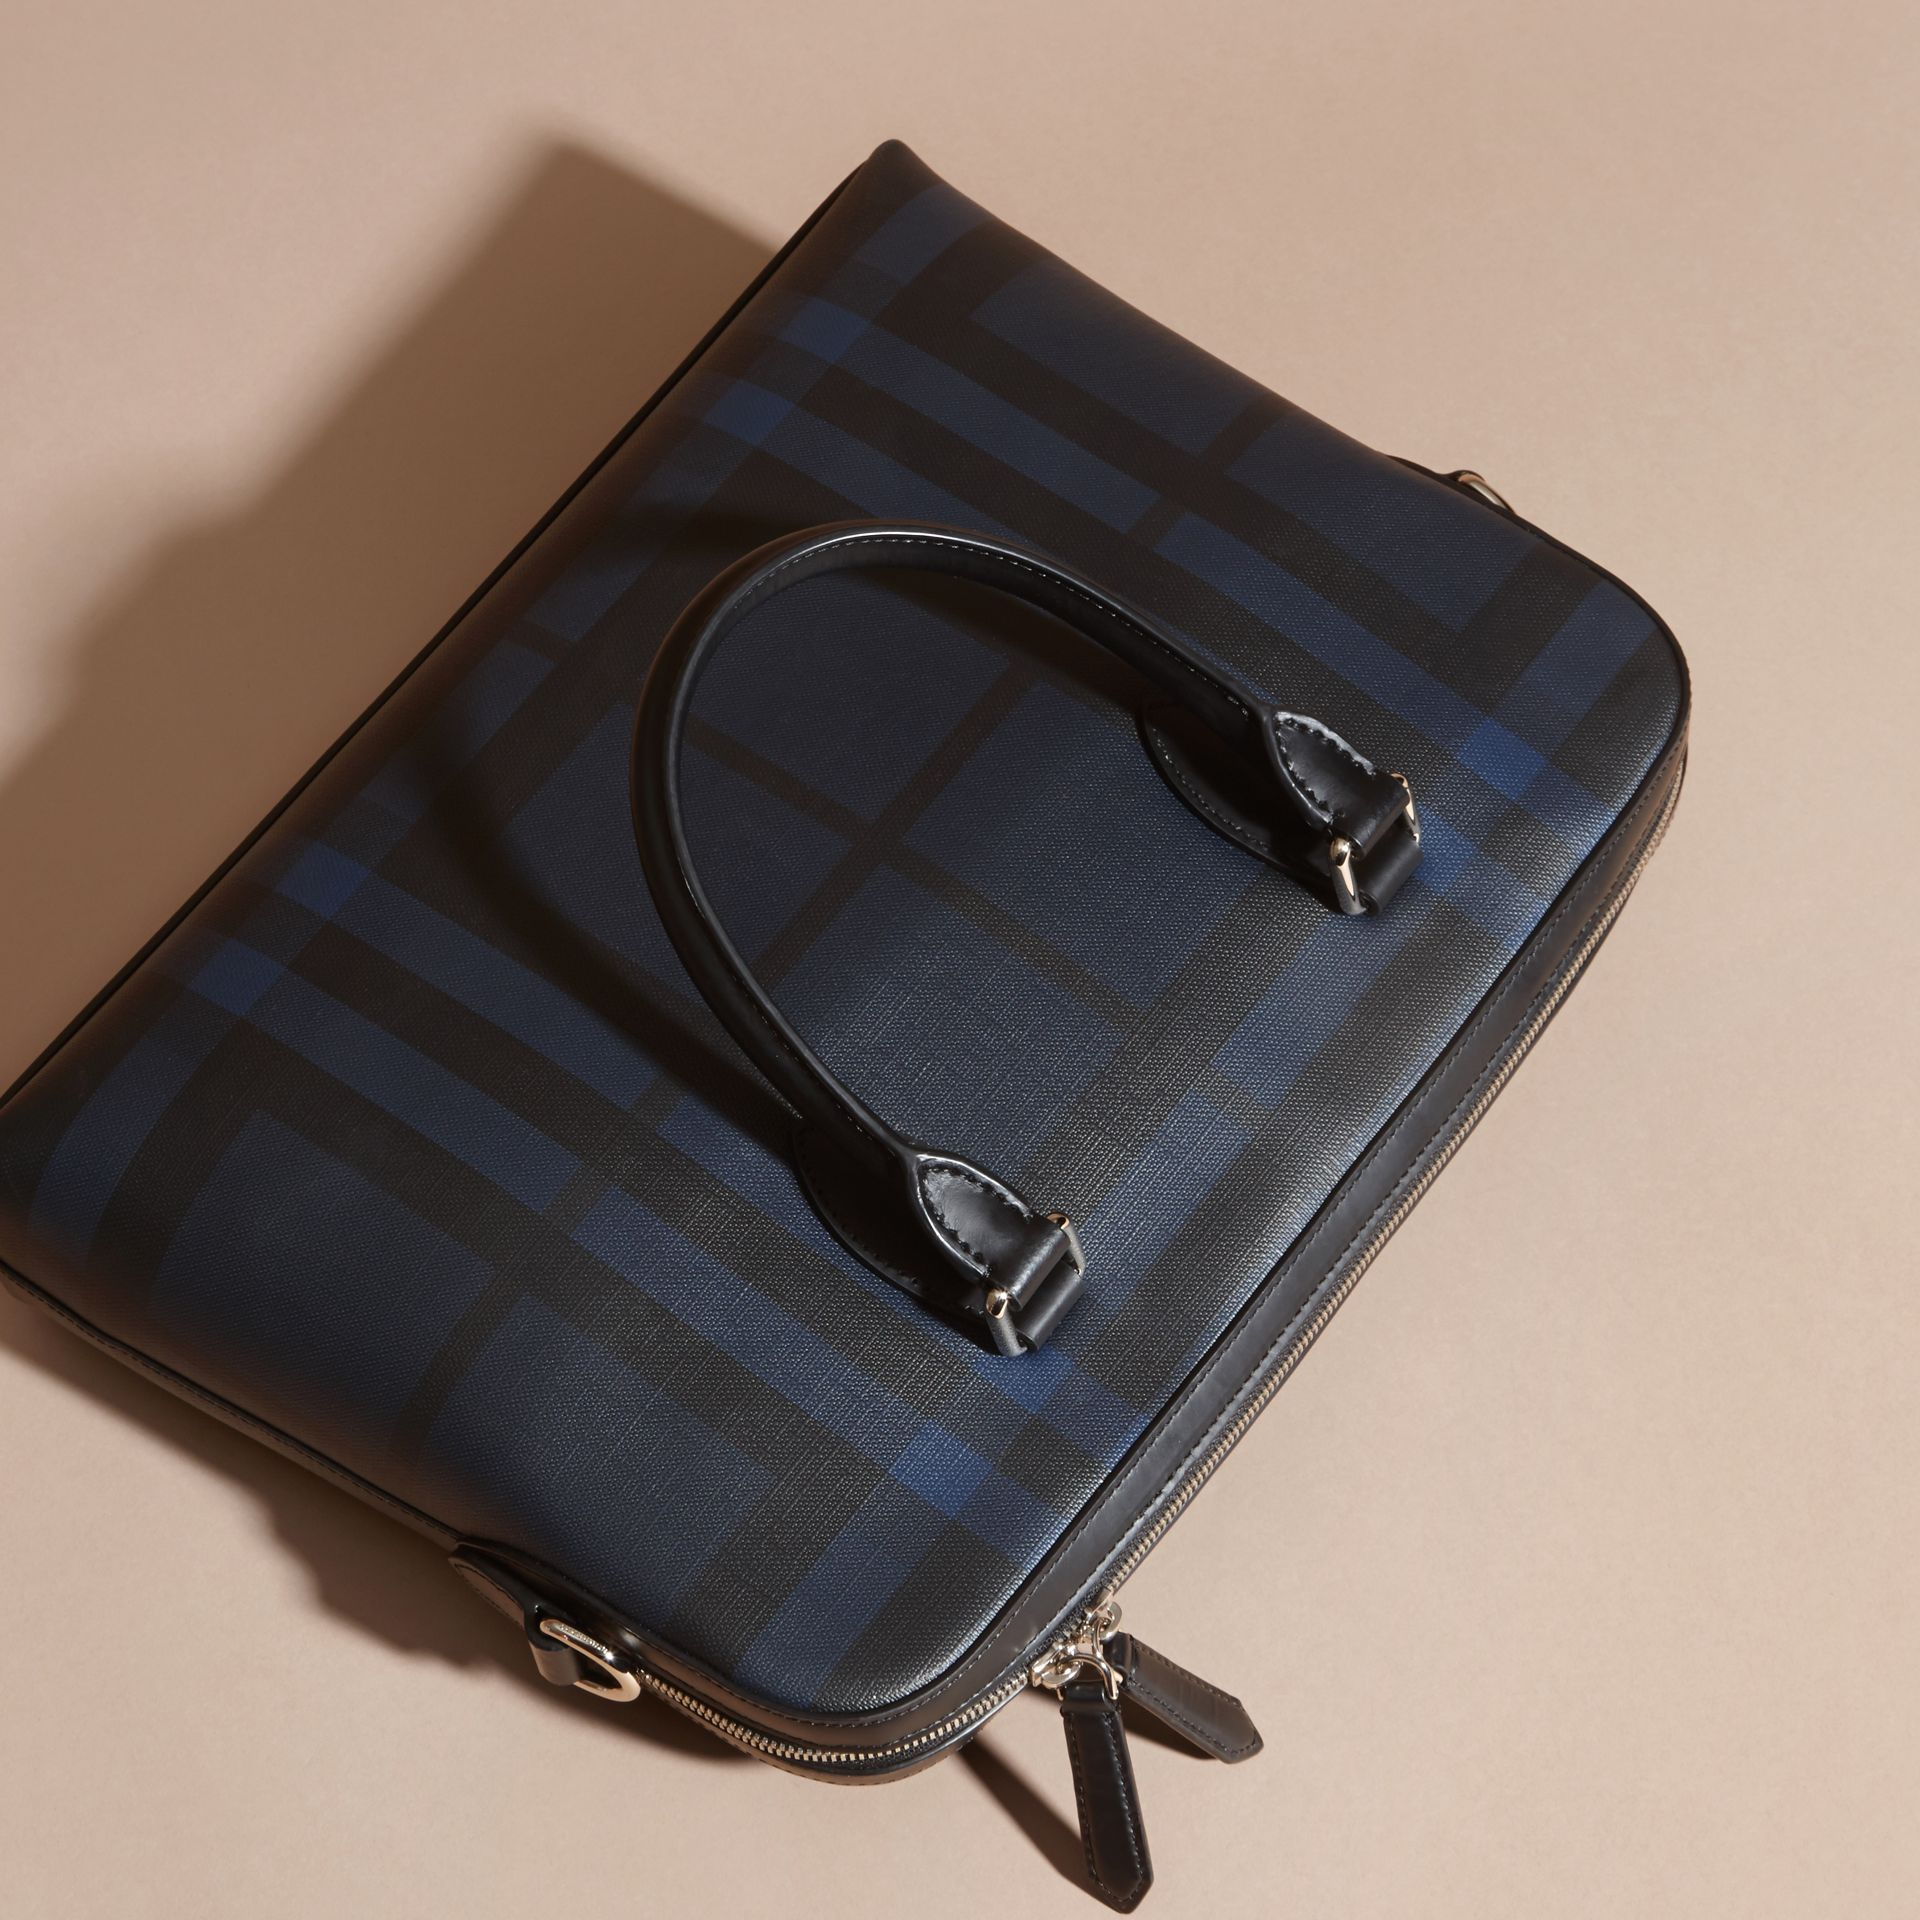 Sac The Barrow fin avec motif London check (Marine/noir) - photo de la galerie 8